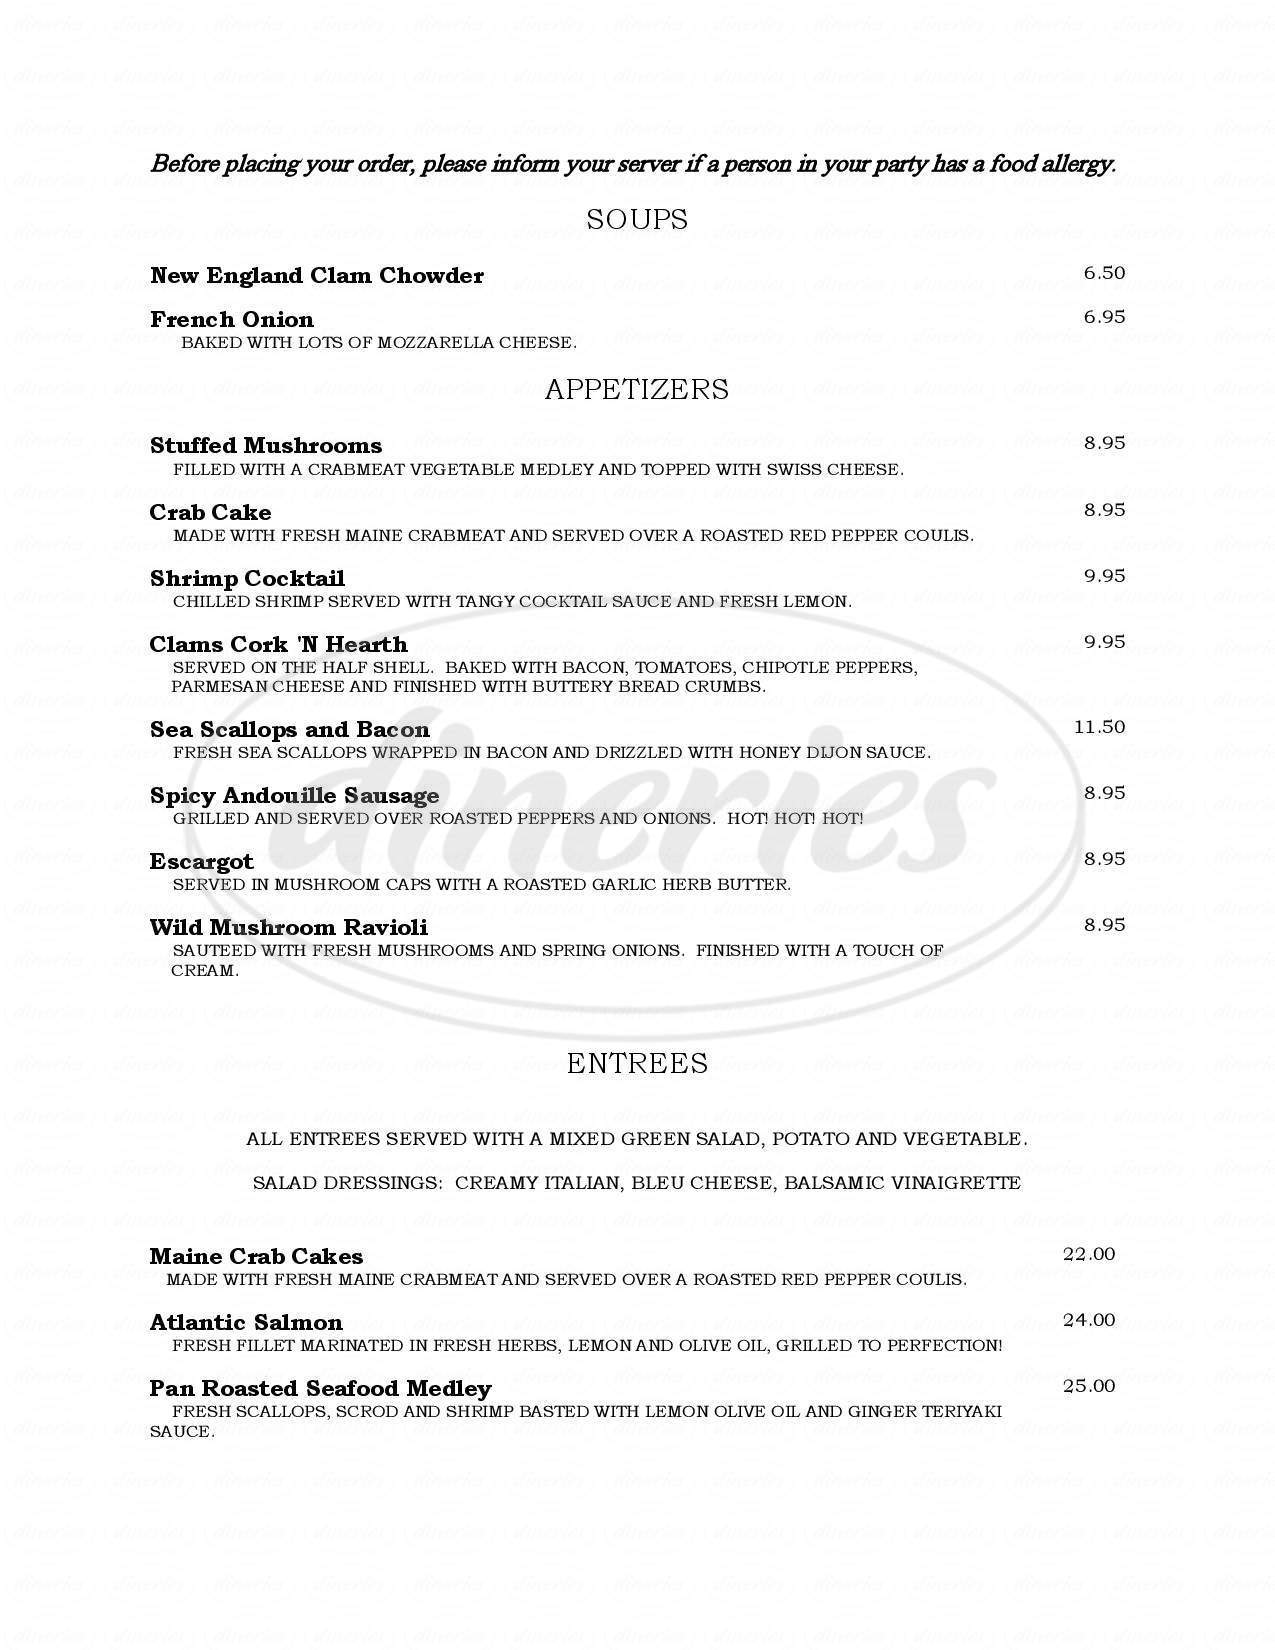 menu for Cork N' Hearth